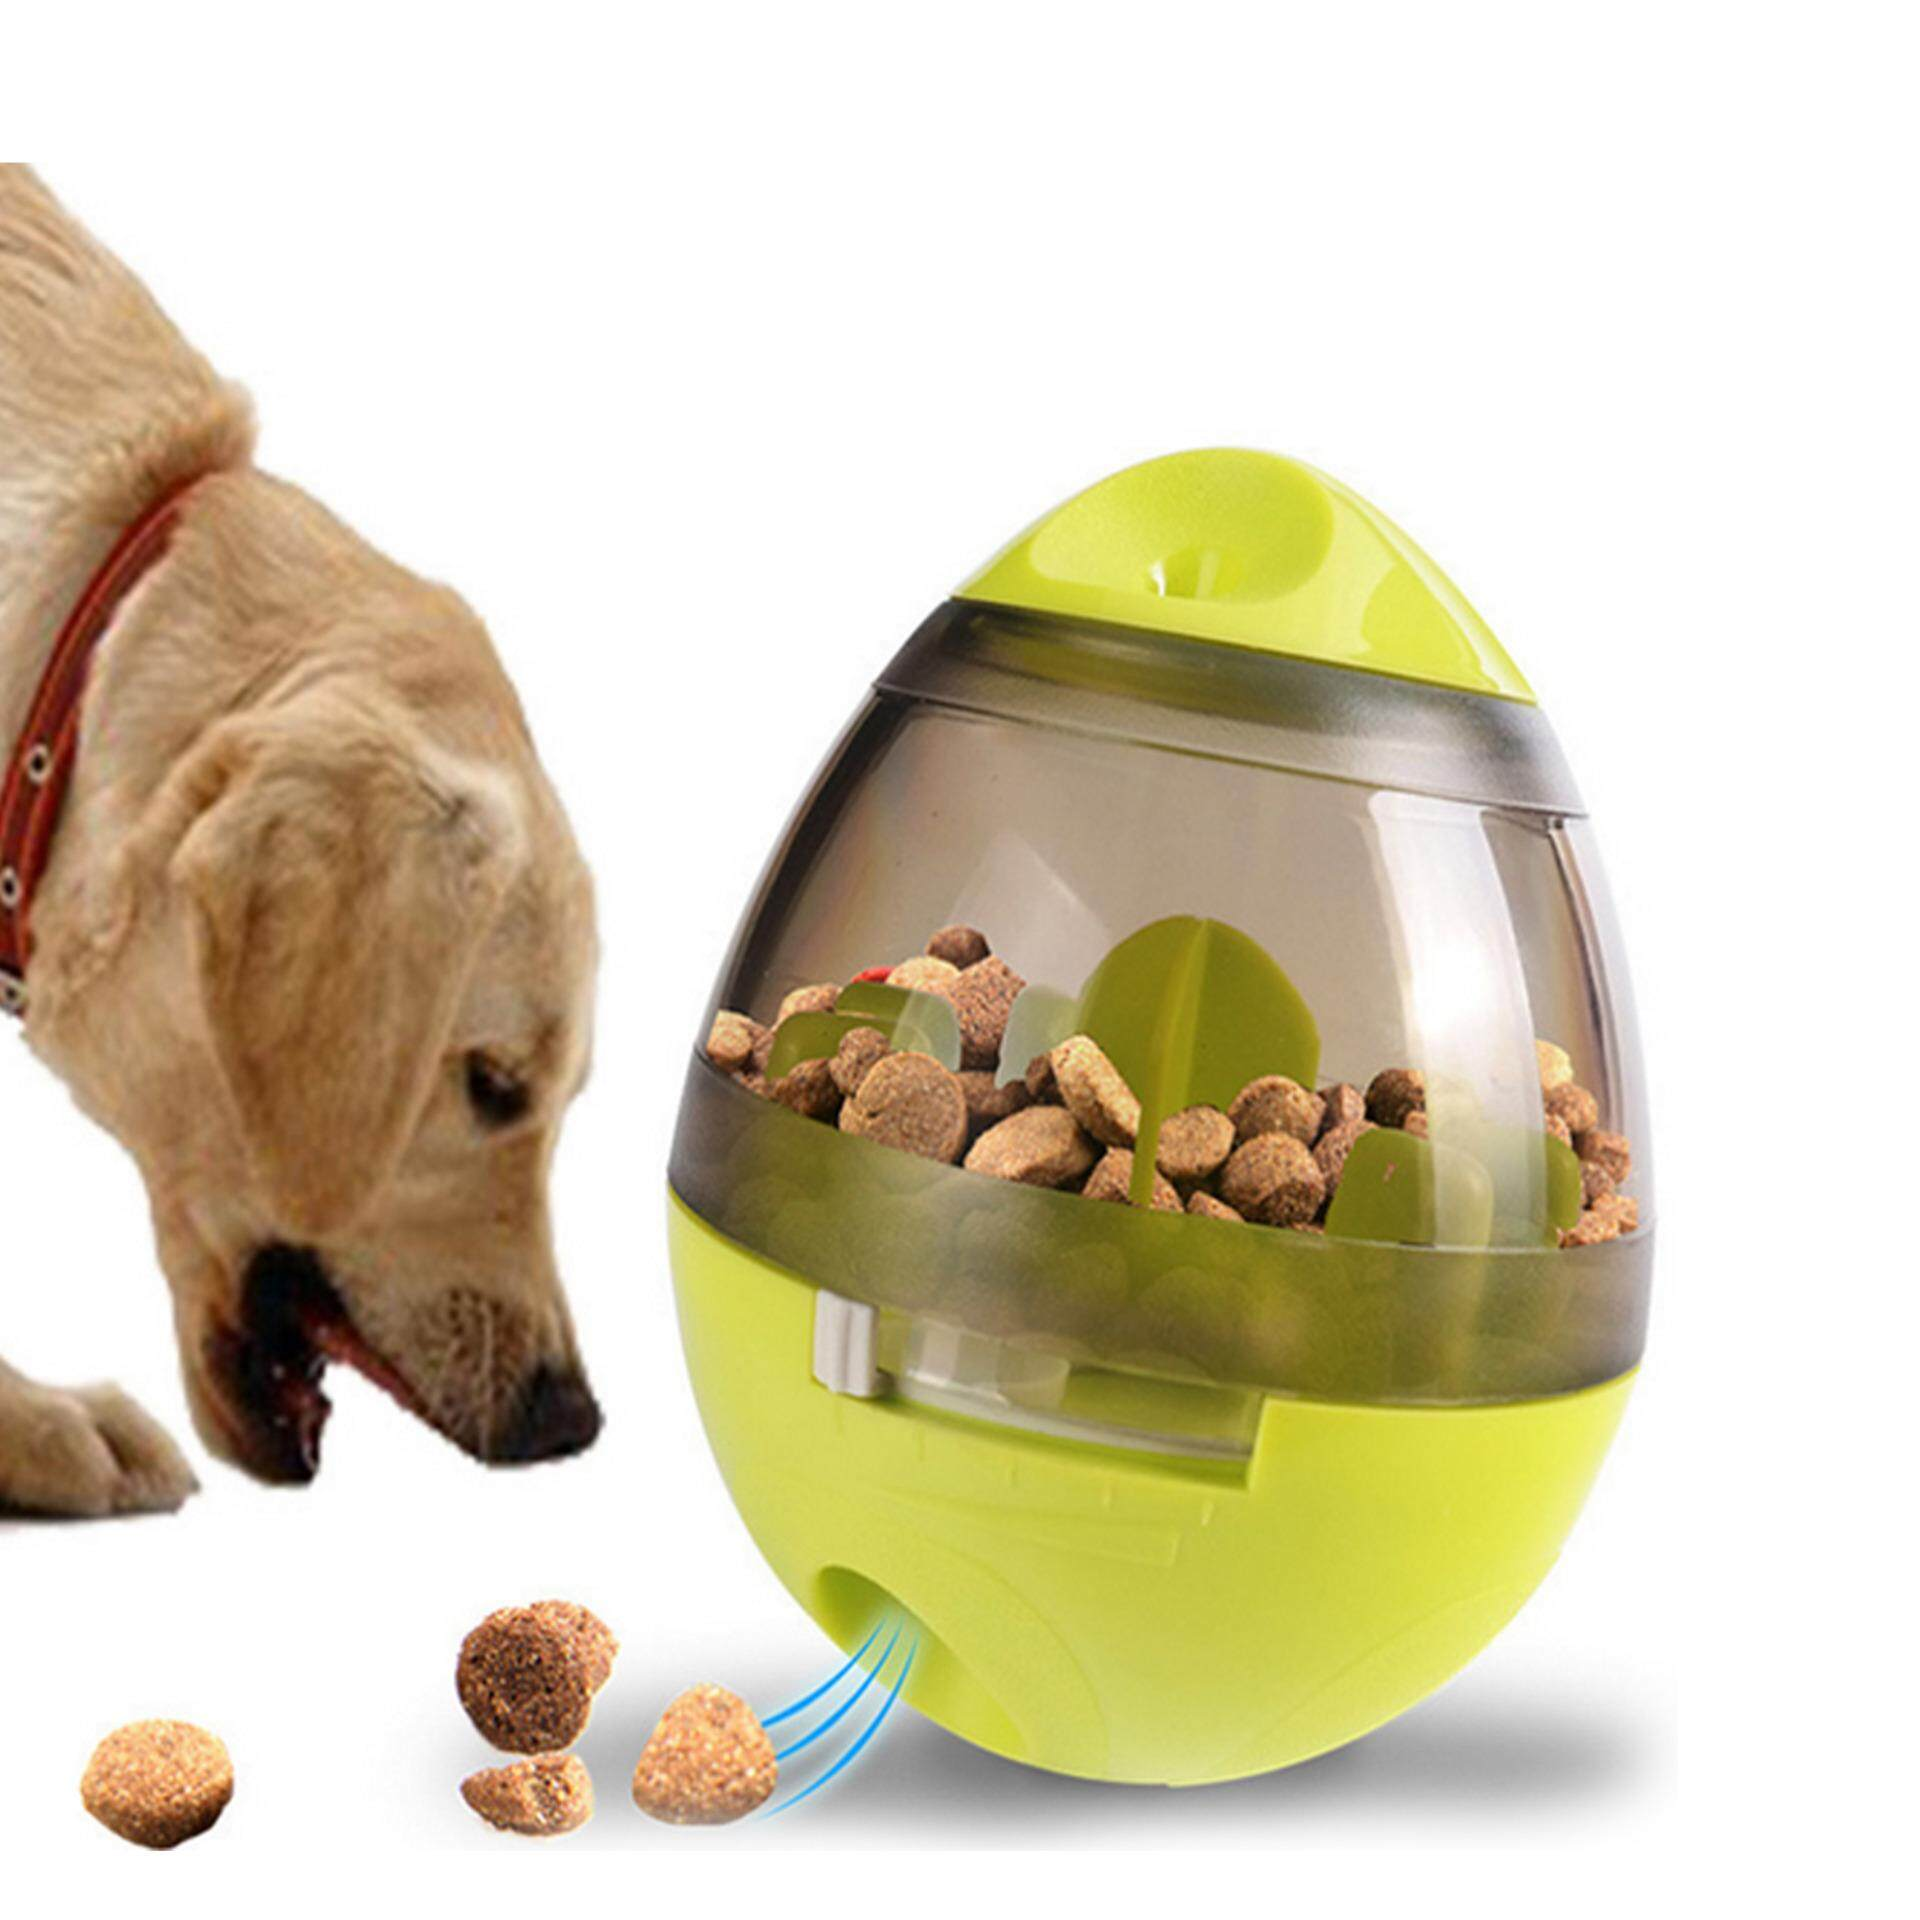 Interactive Pet Dogs Cats Food Dispenser Ball Food Treat Dispensing Feeding Ball Bowl Pet Game Toy - Intl By Stoneky.